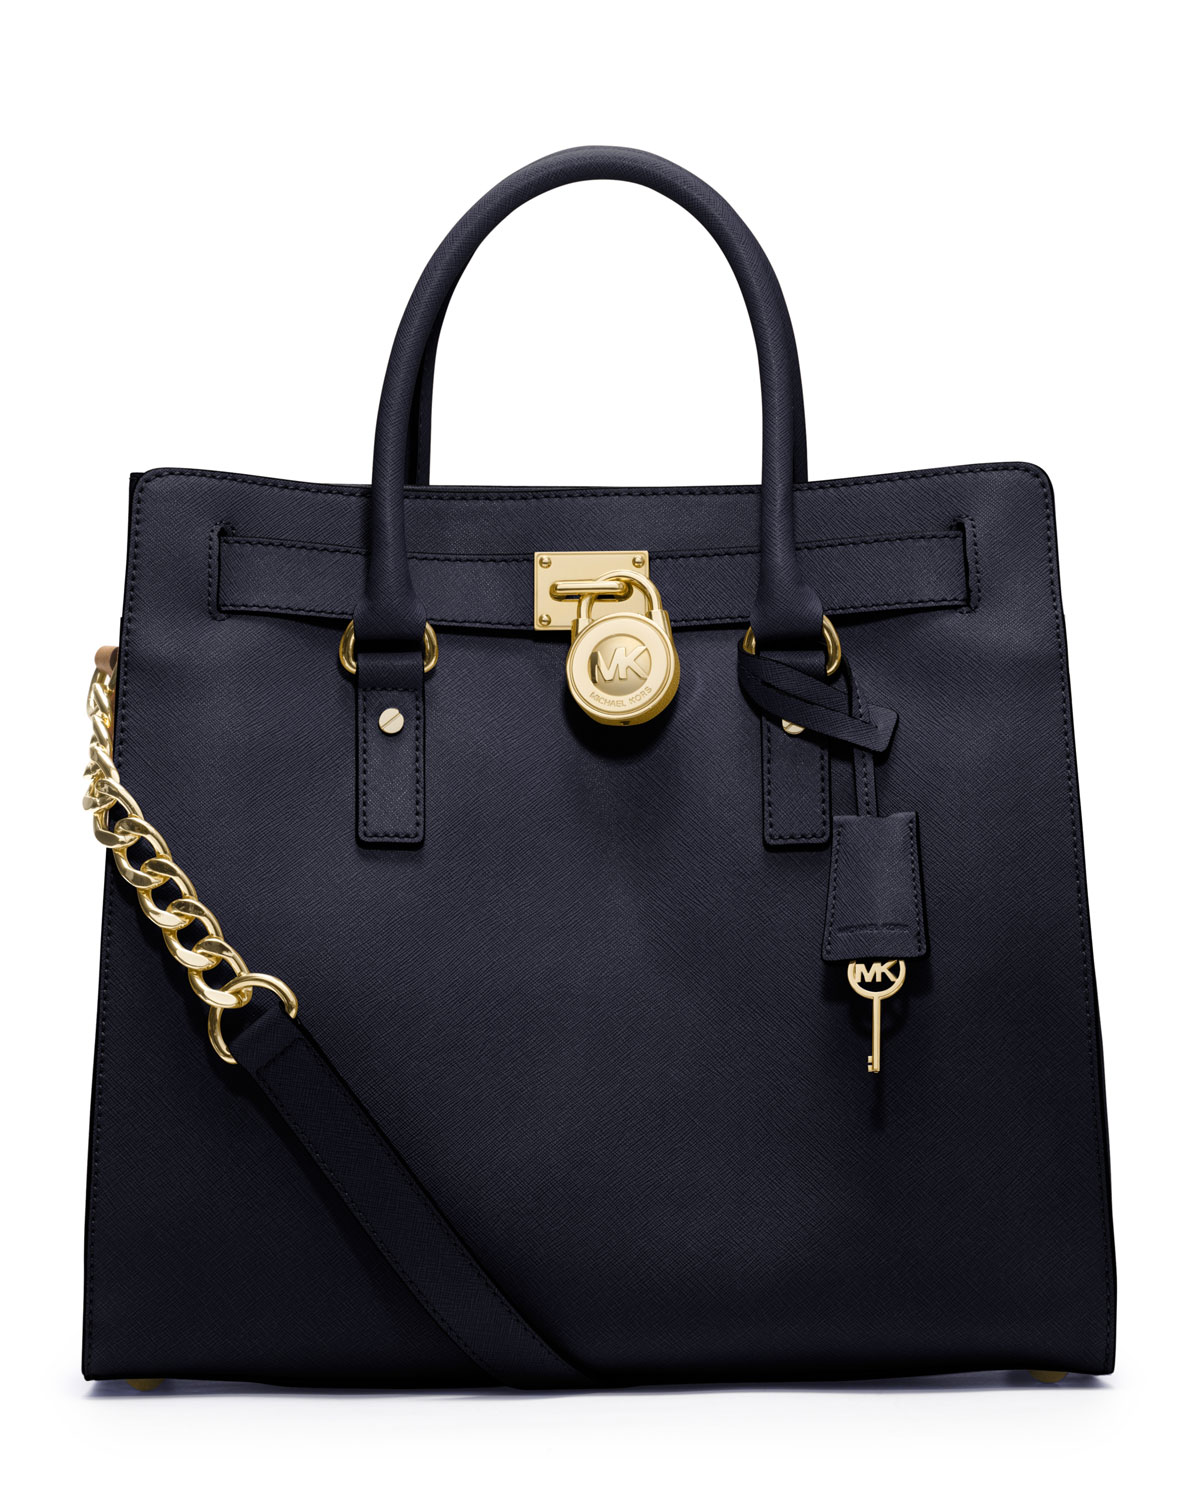 Michael Kors - Luxury Designer Goods